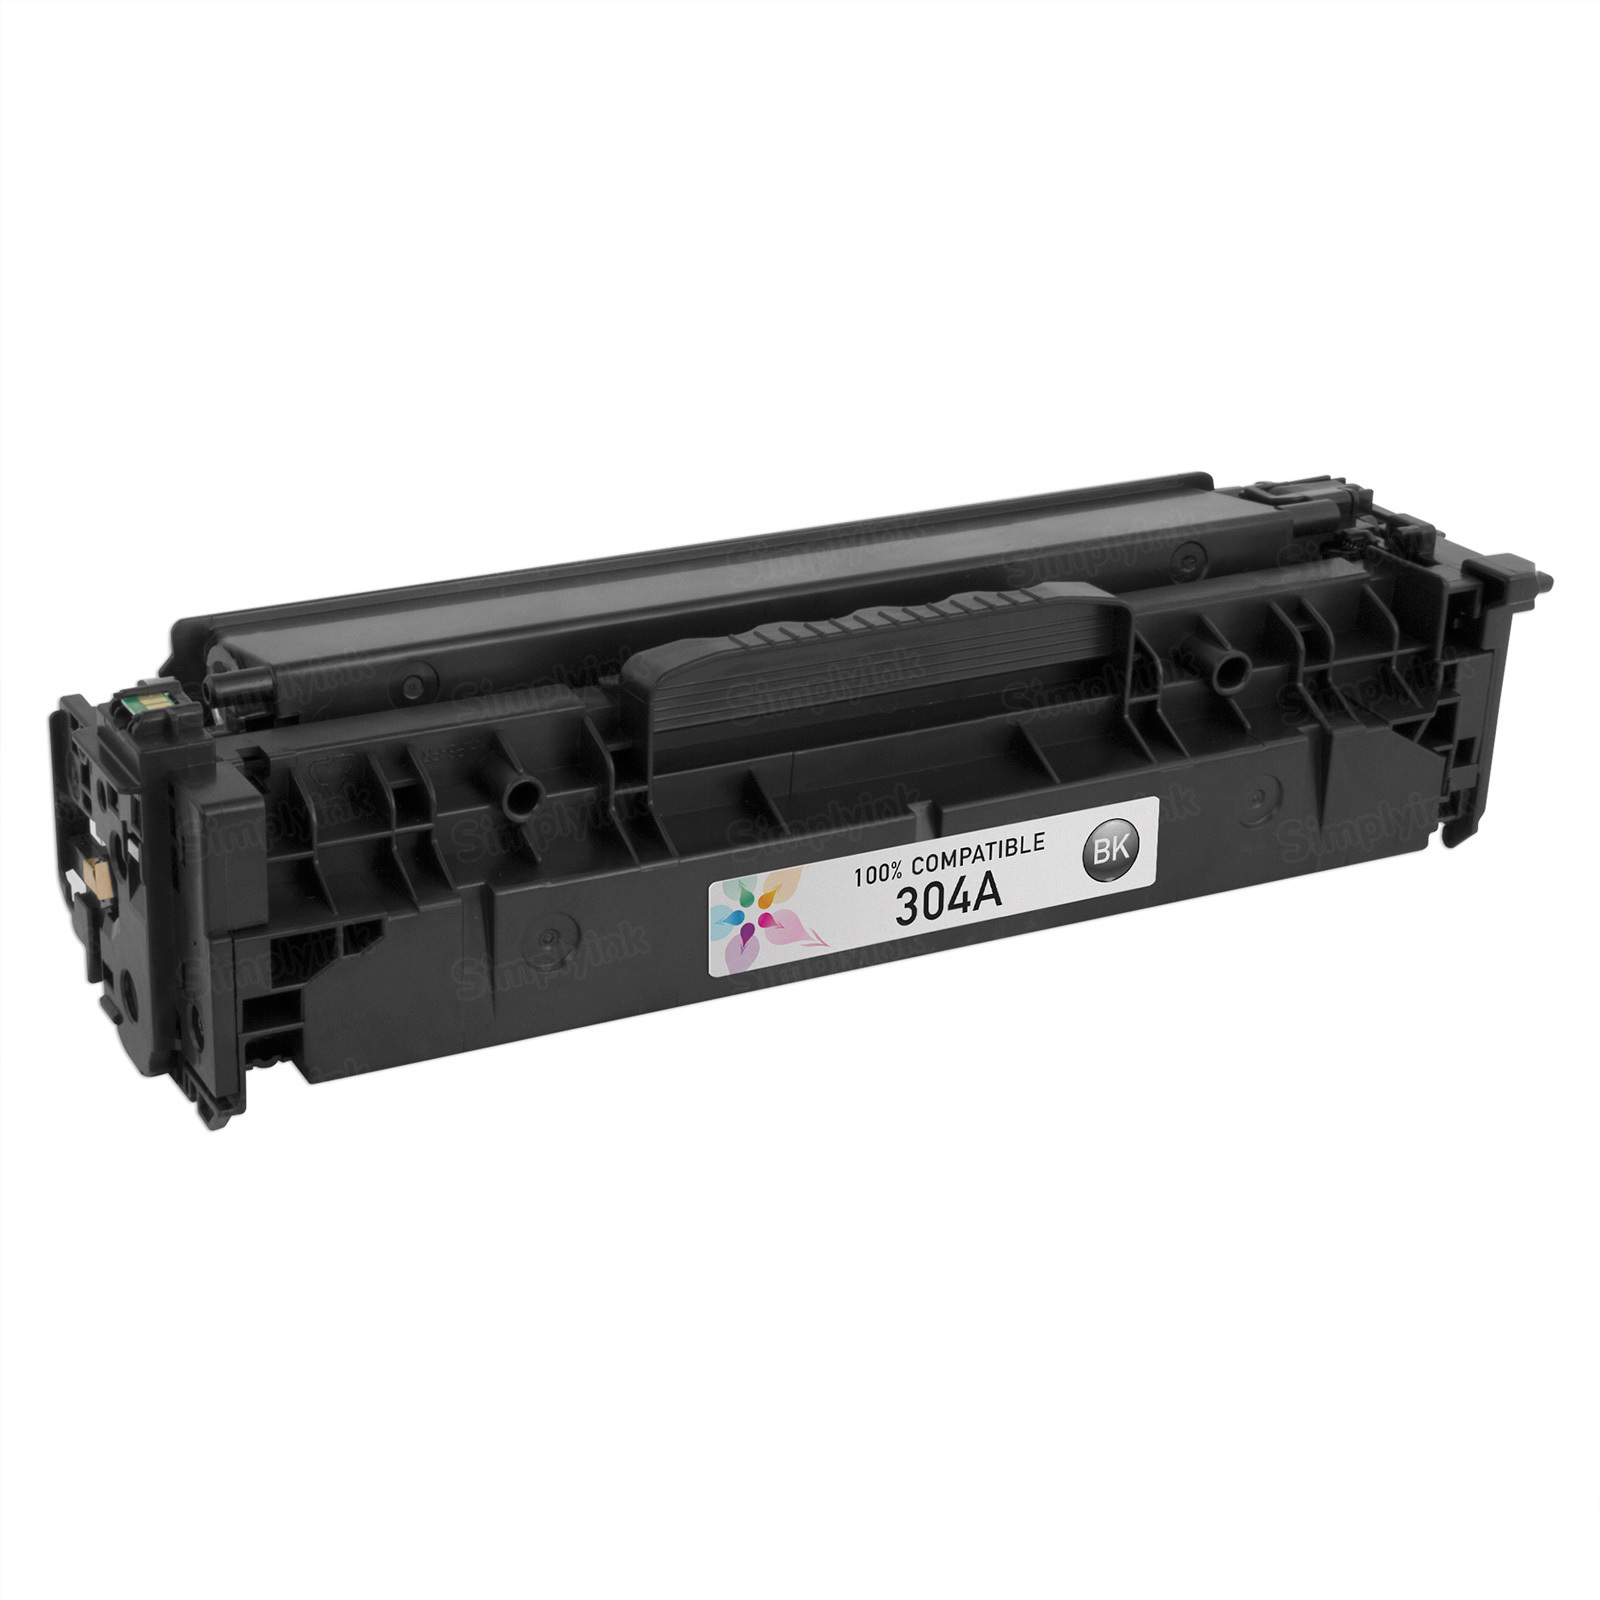 Replacement Black Toner for HP 304A